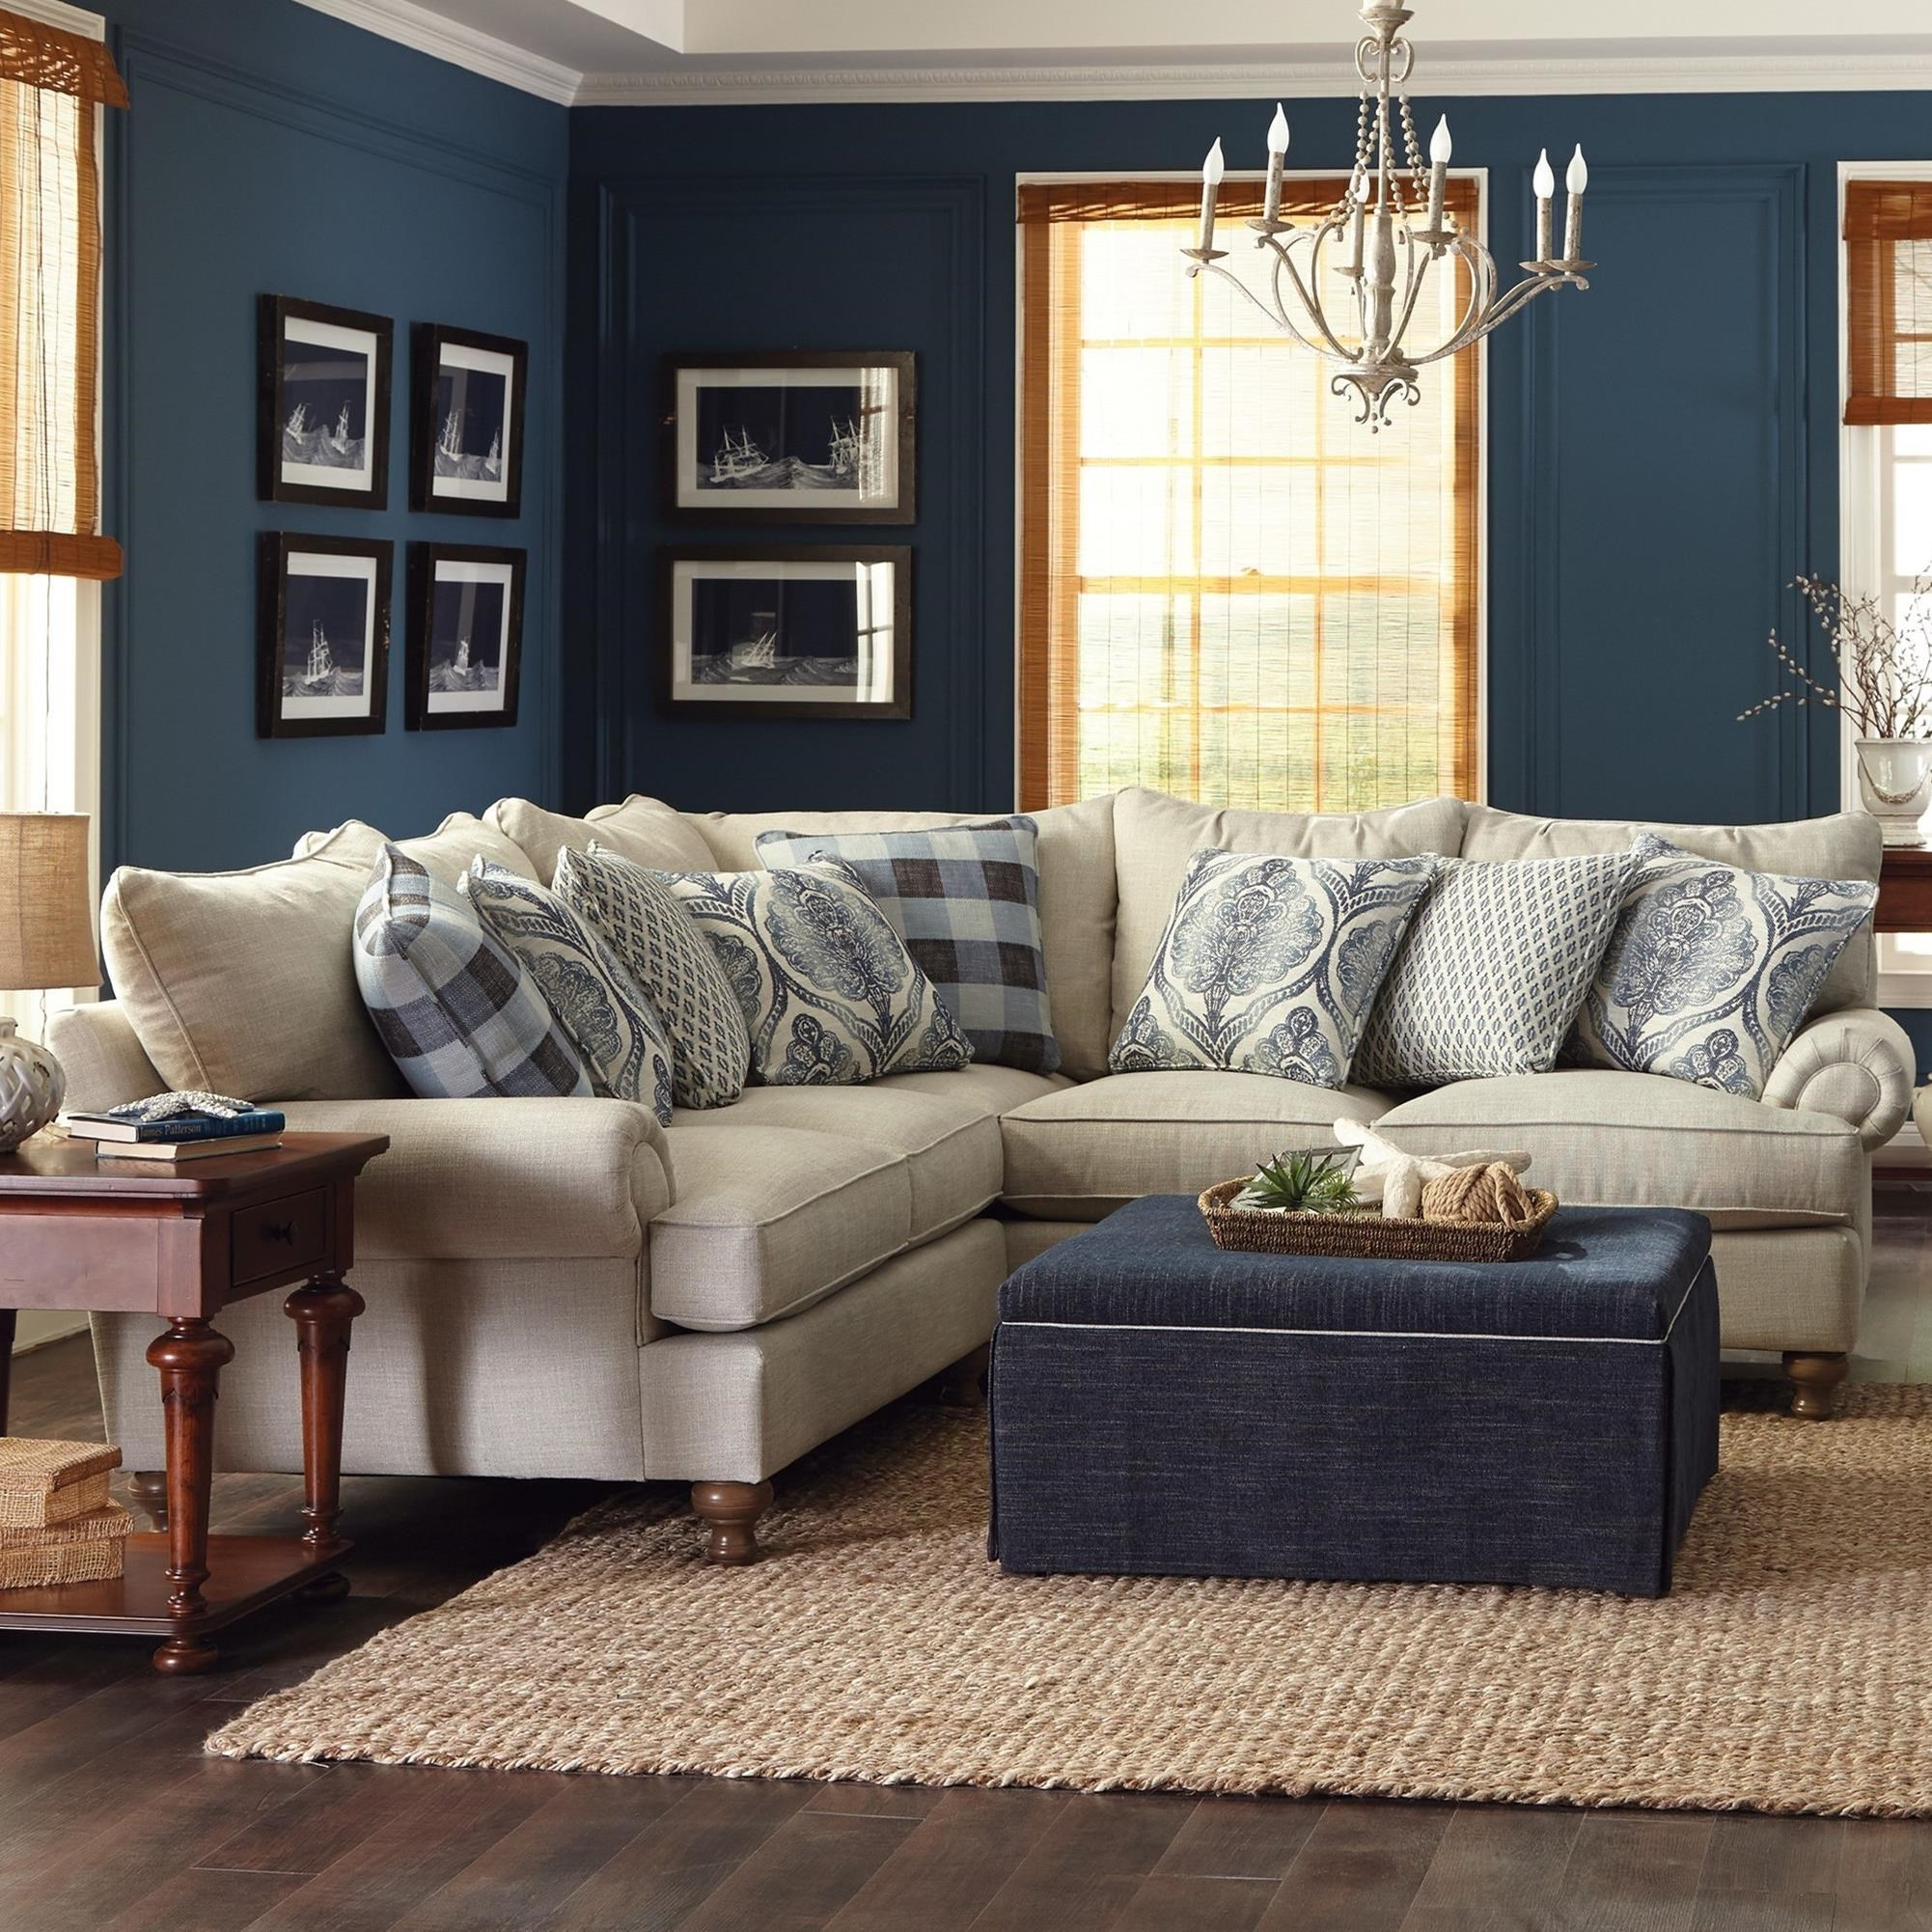 Sectional Sofas Charlotte Nc Small House Interior Design